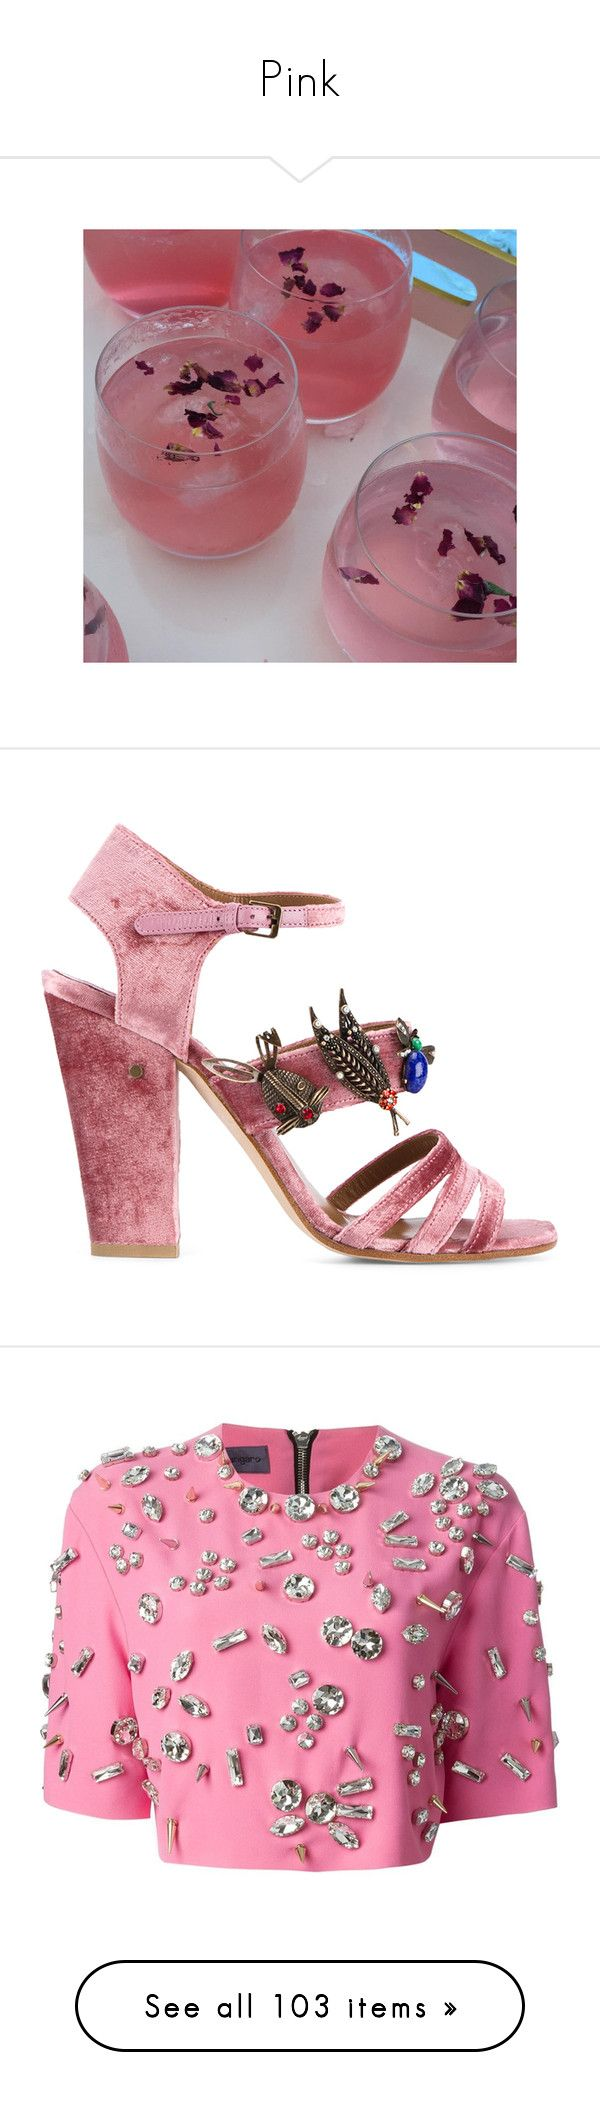 """""""Pink"""" by aaegia ❤ liked on Polyvore featuring Topshop, Laurence Dacade, shoes, sandals, pink sandals, strappy sandals, strappy high heel sandals, pink high heel sandals, multi color sandals and tops"""